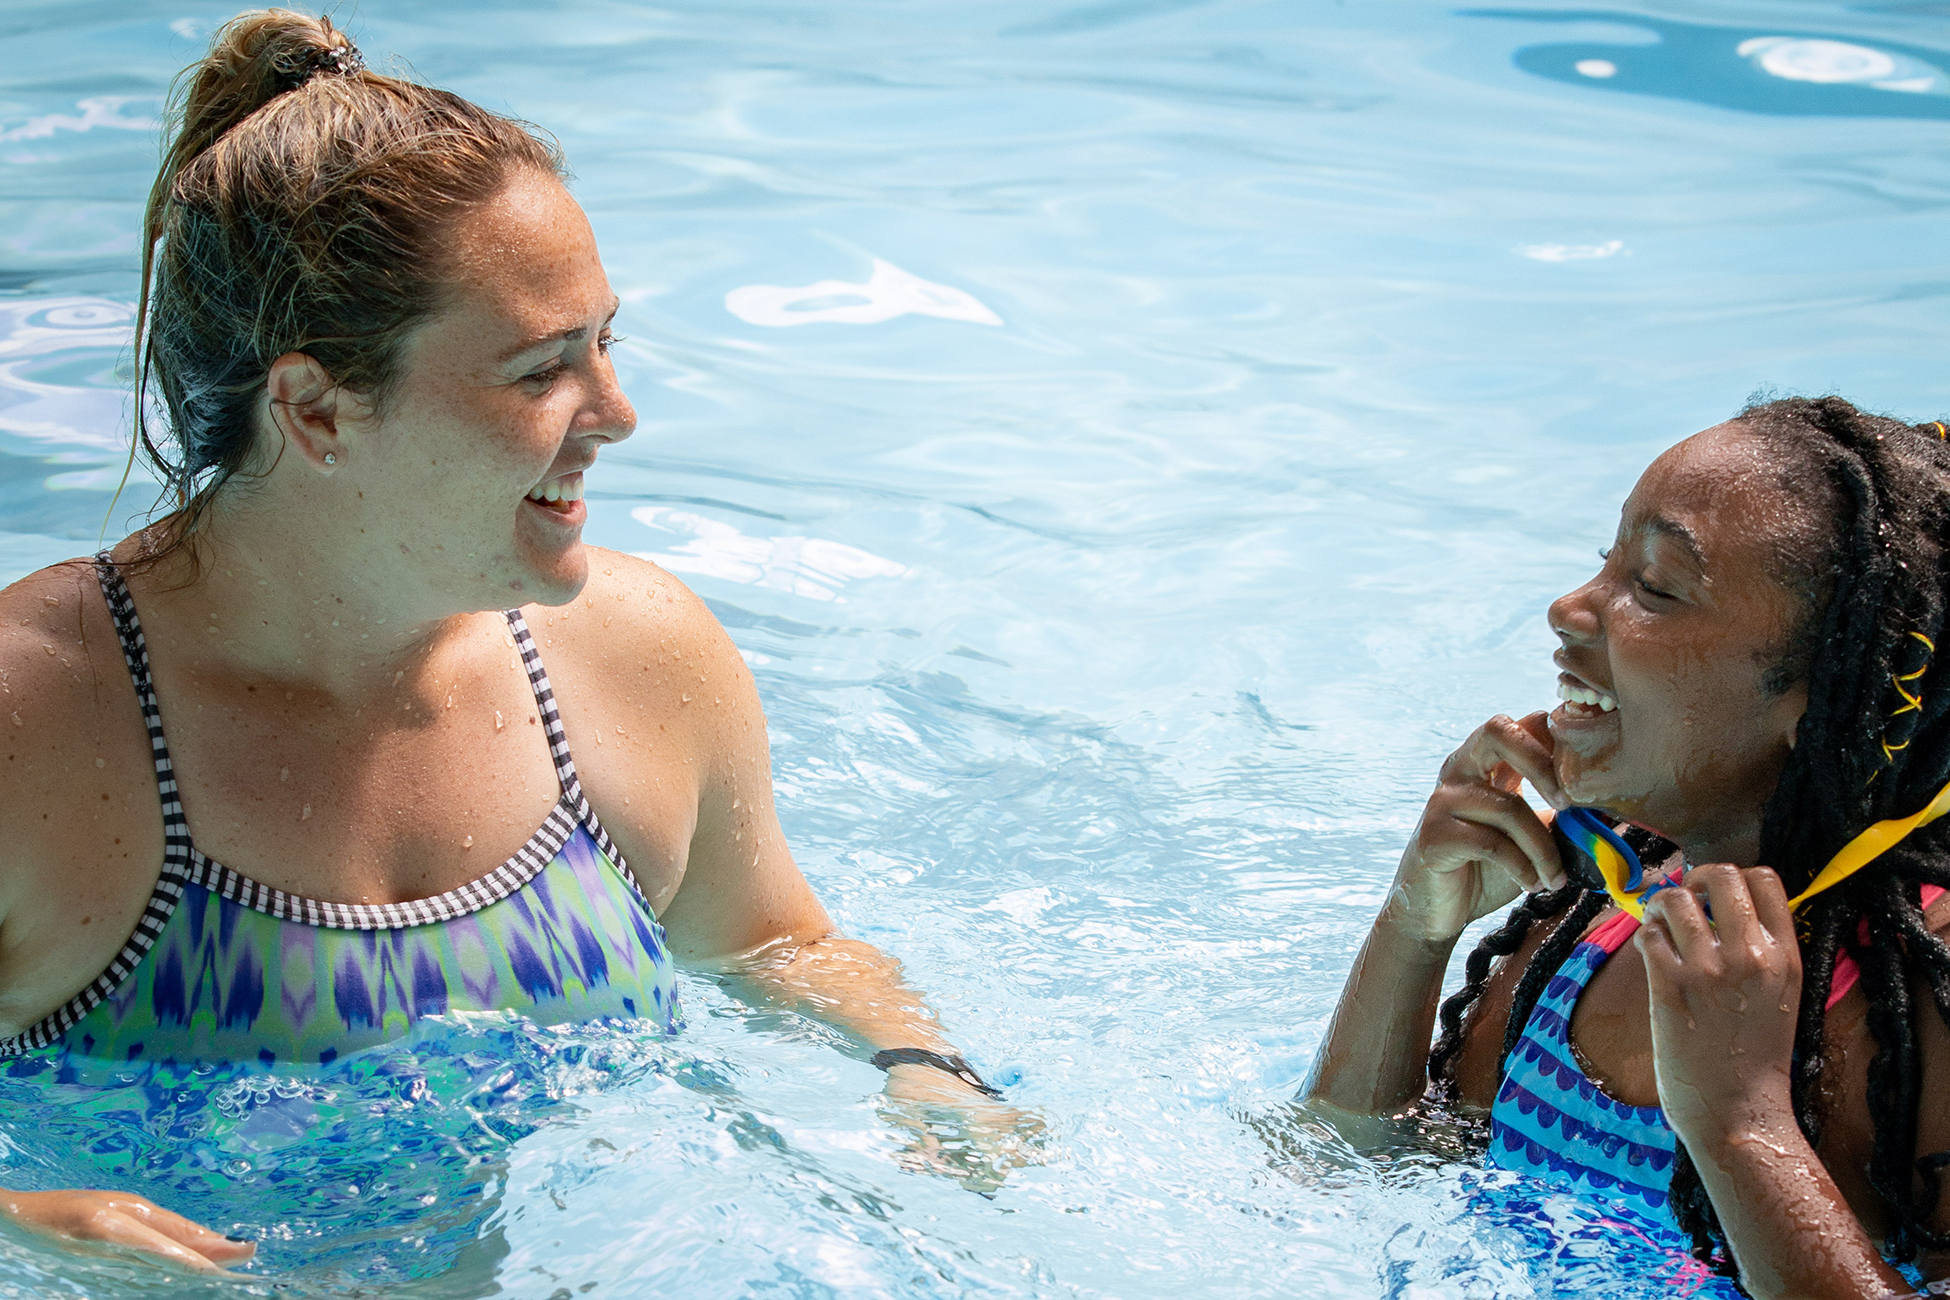 Program coordinator and swim instructor Daniela Susnara and child share a fun moment of learning.